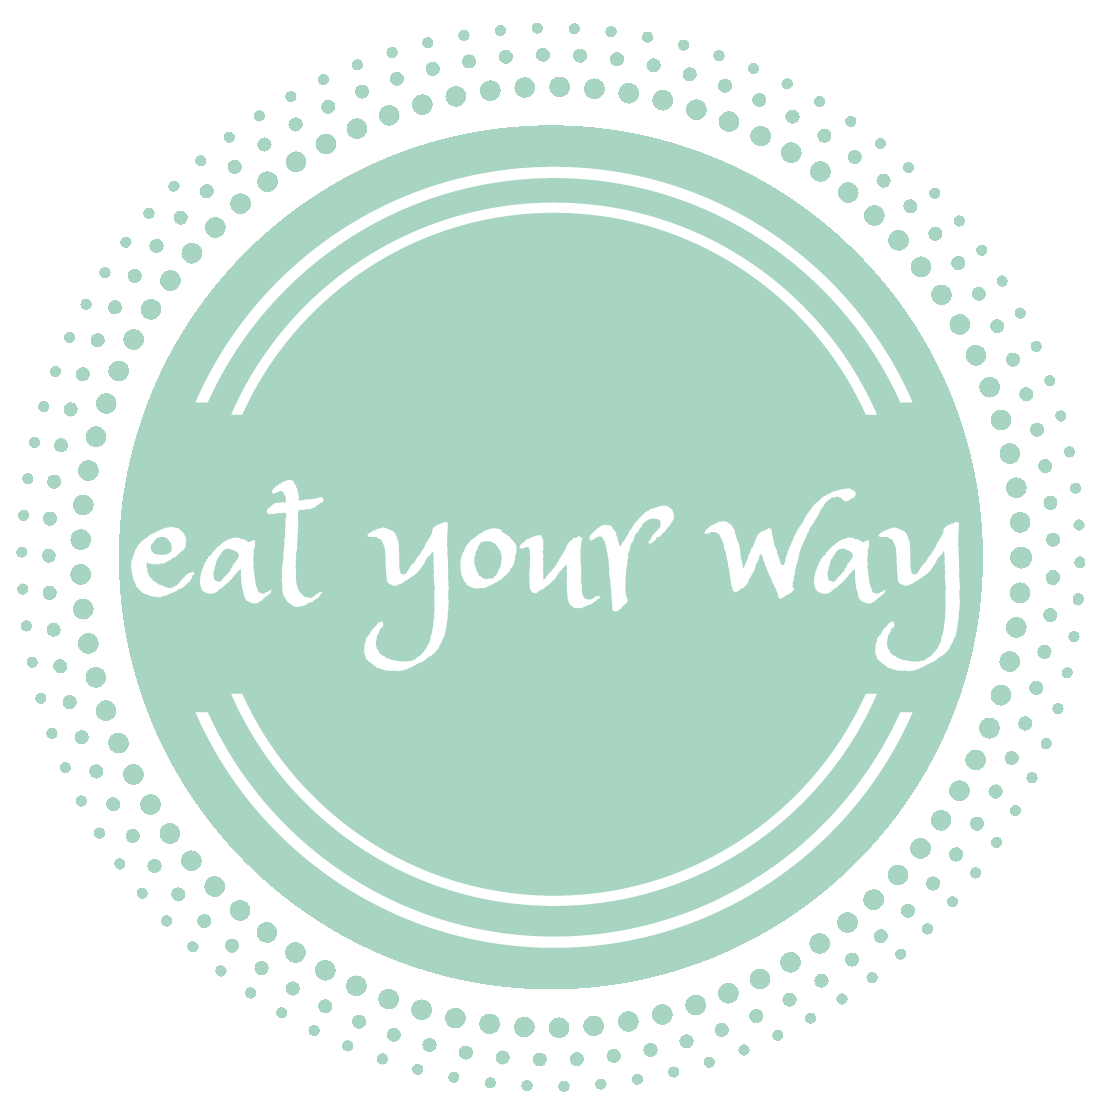 eatyourway.ch